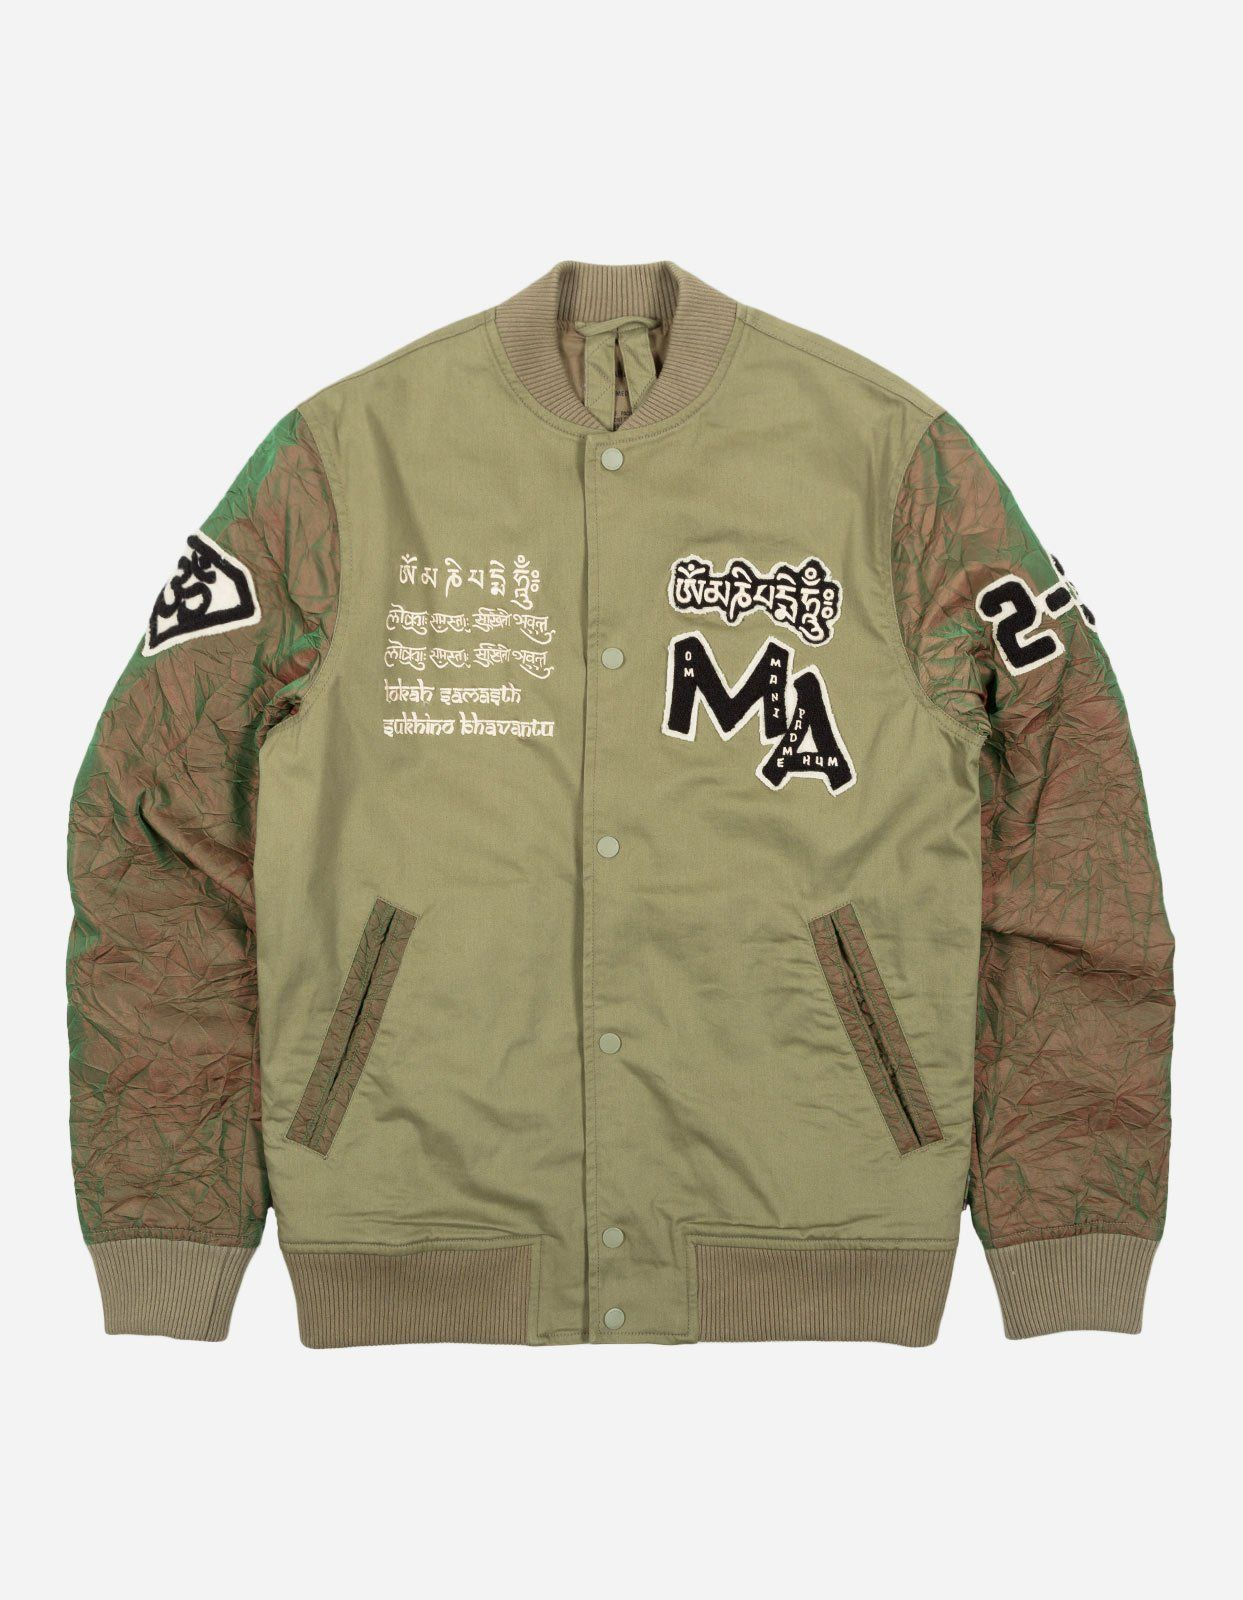 maharishi | Mani Stadium Jacket in 2020 | Jackets, Outerwear